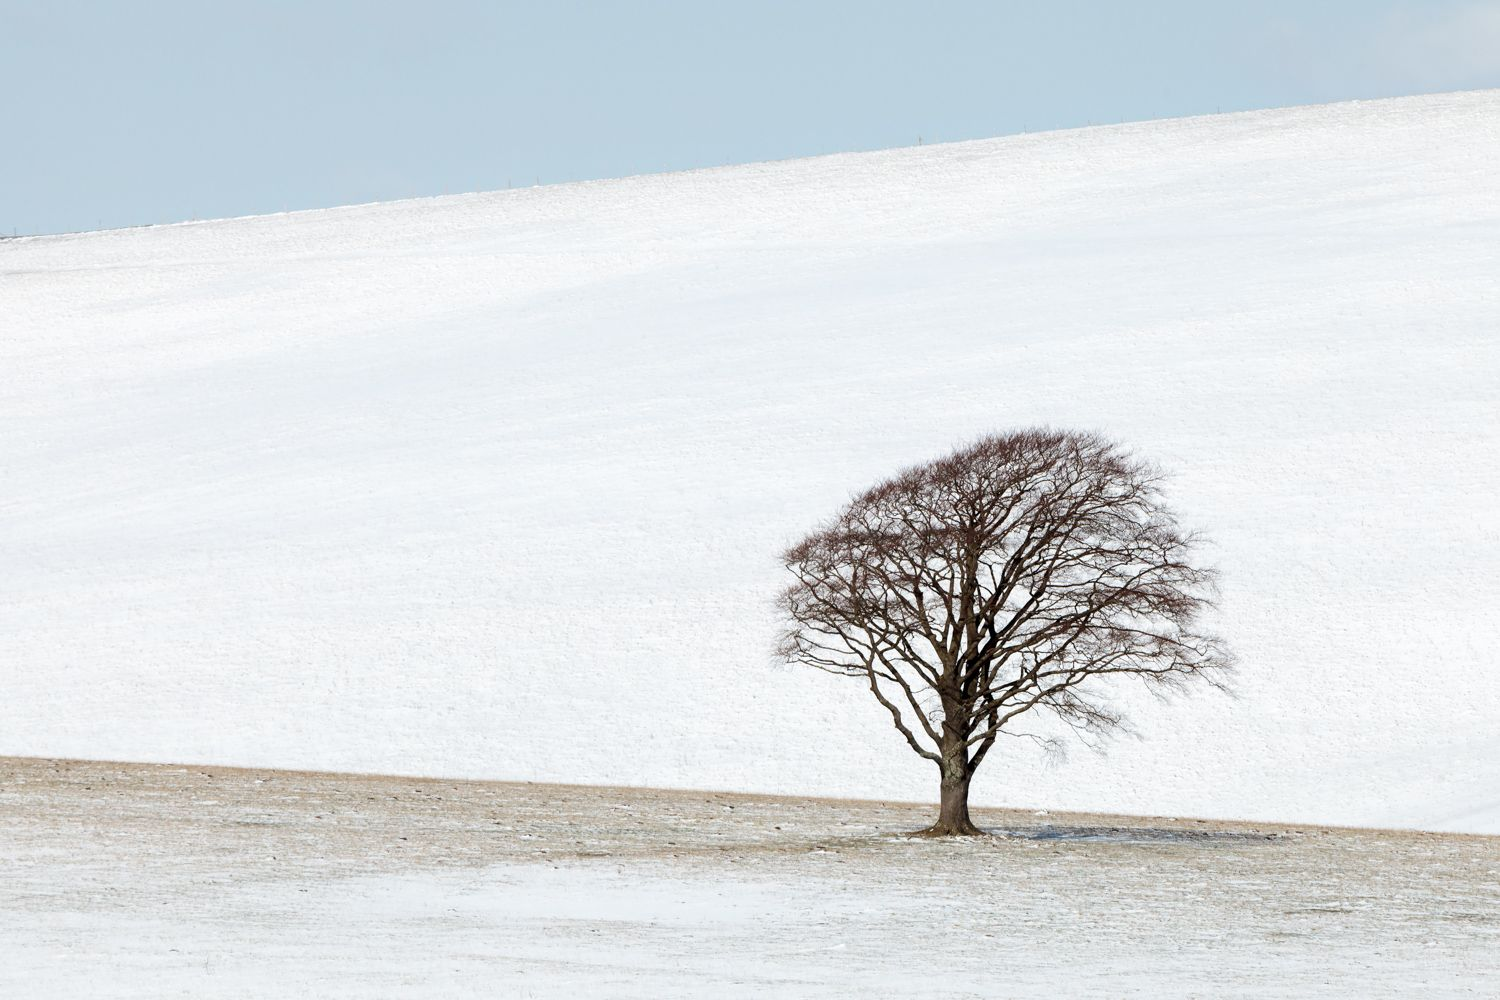 single tree in snowy field